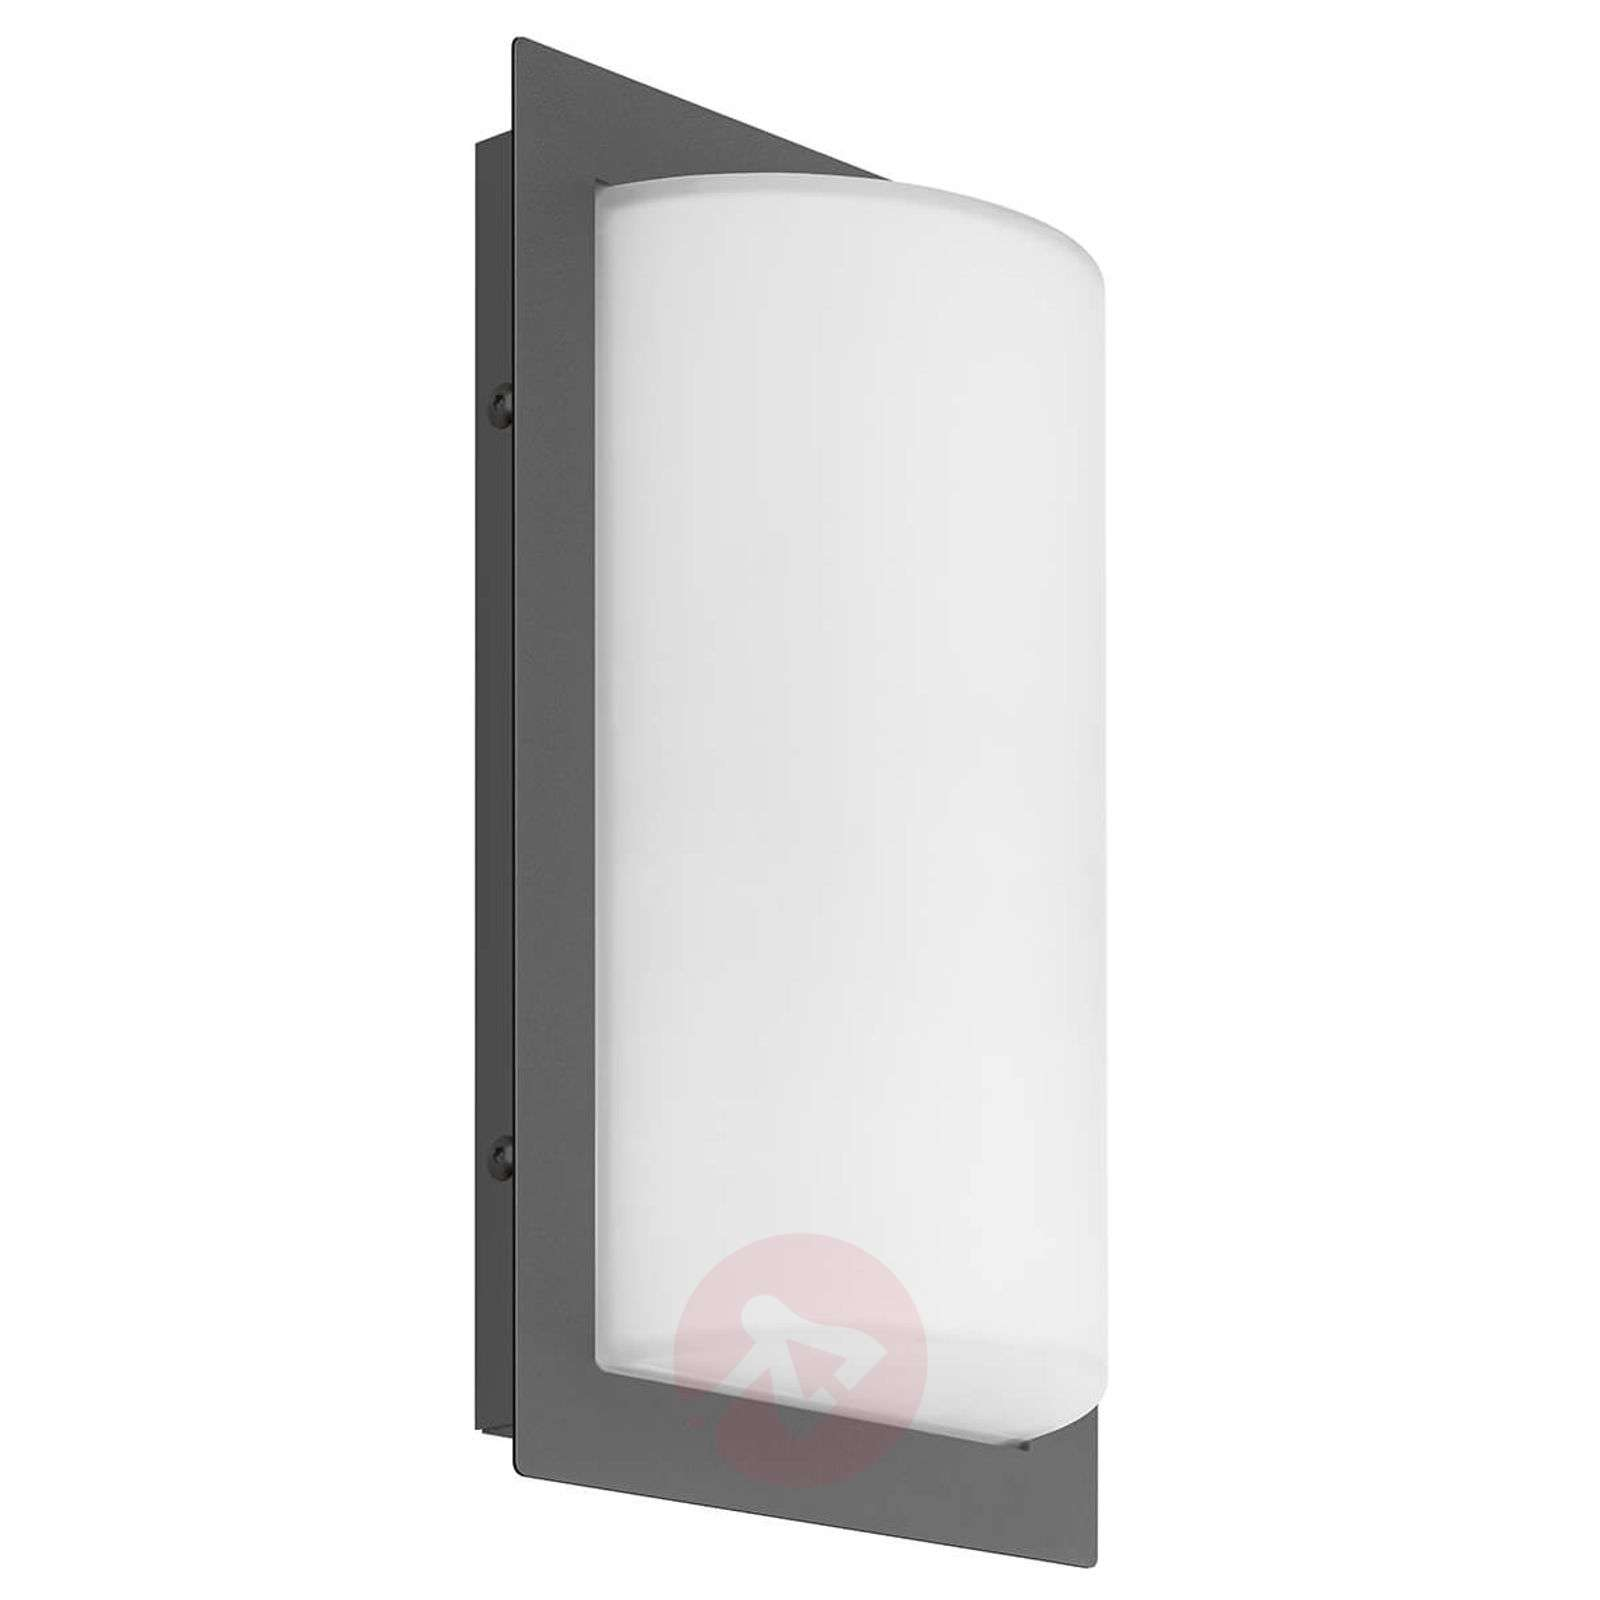 Rectangular sensor wall light Luis for outdoors-6068109-01